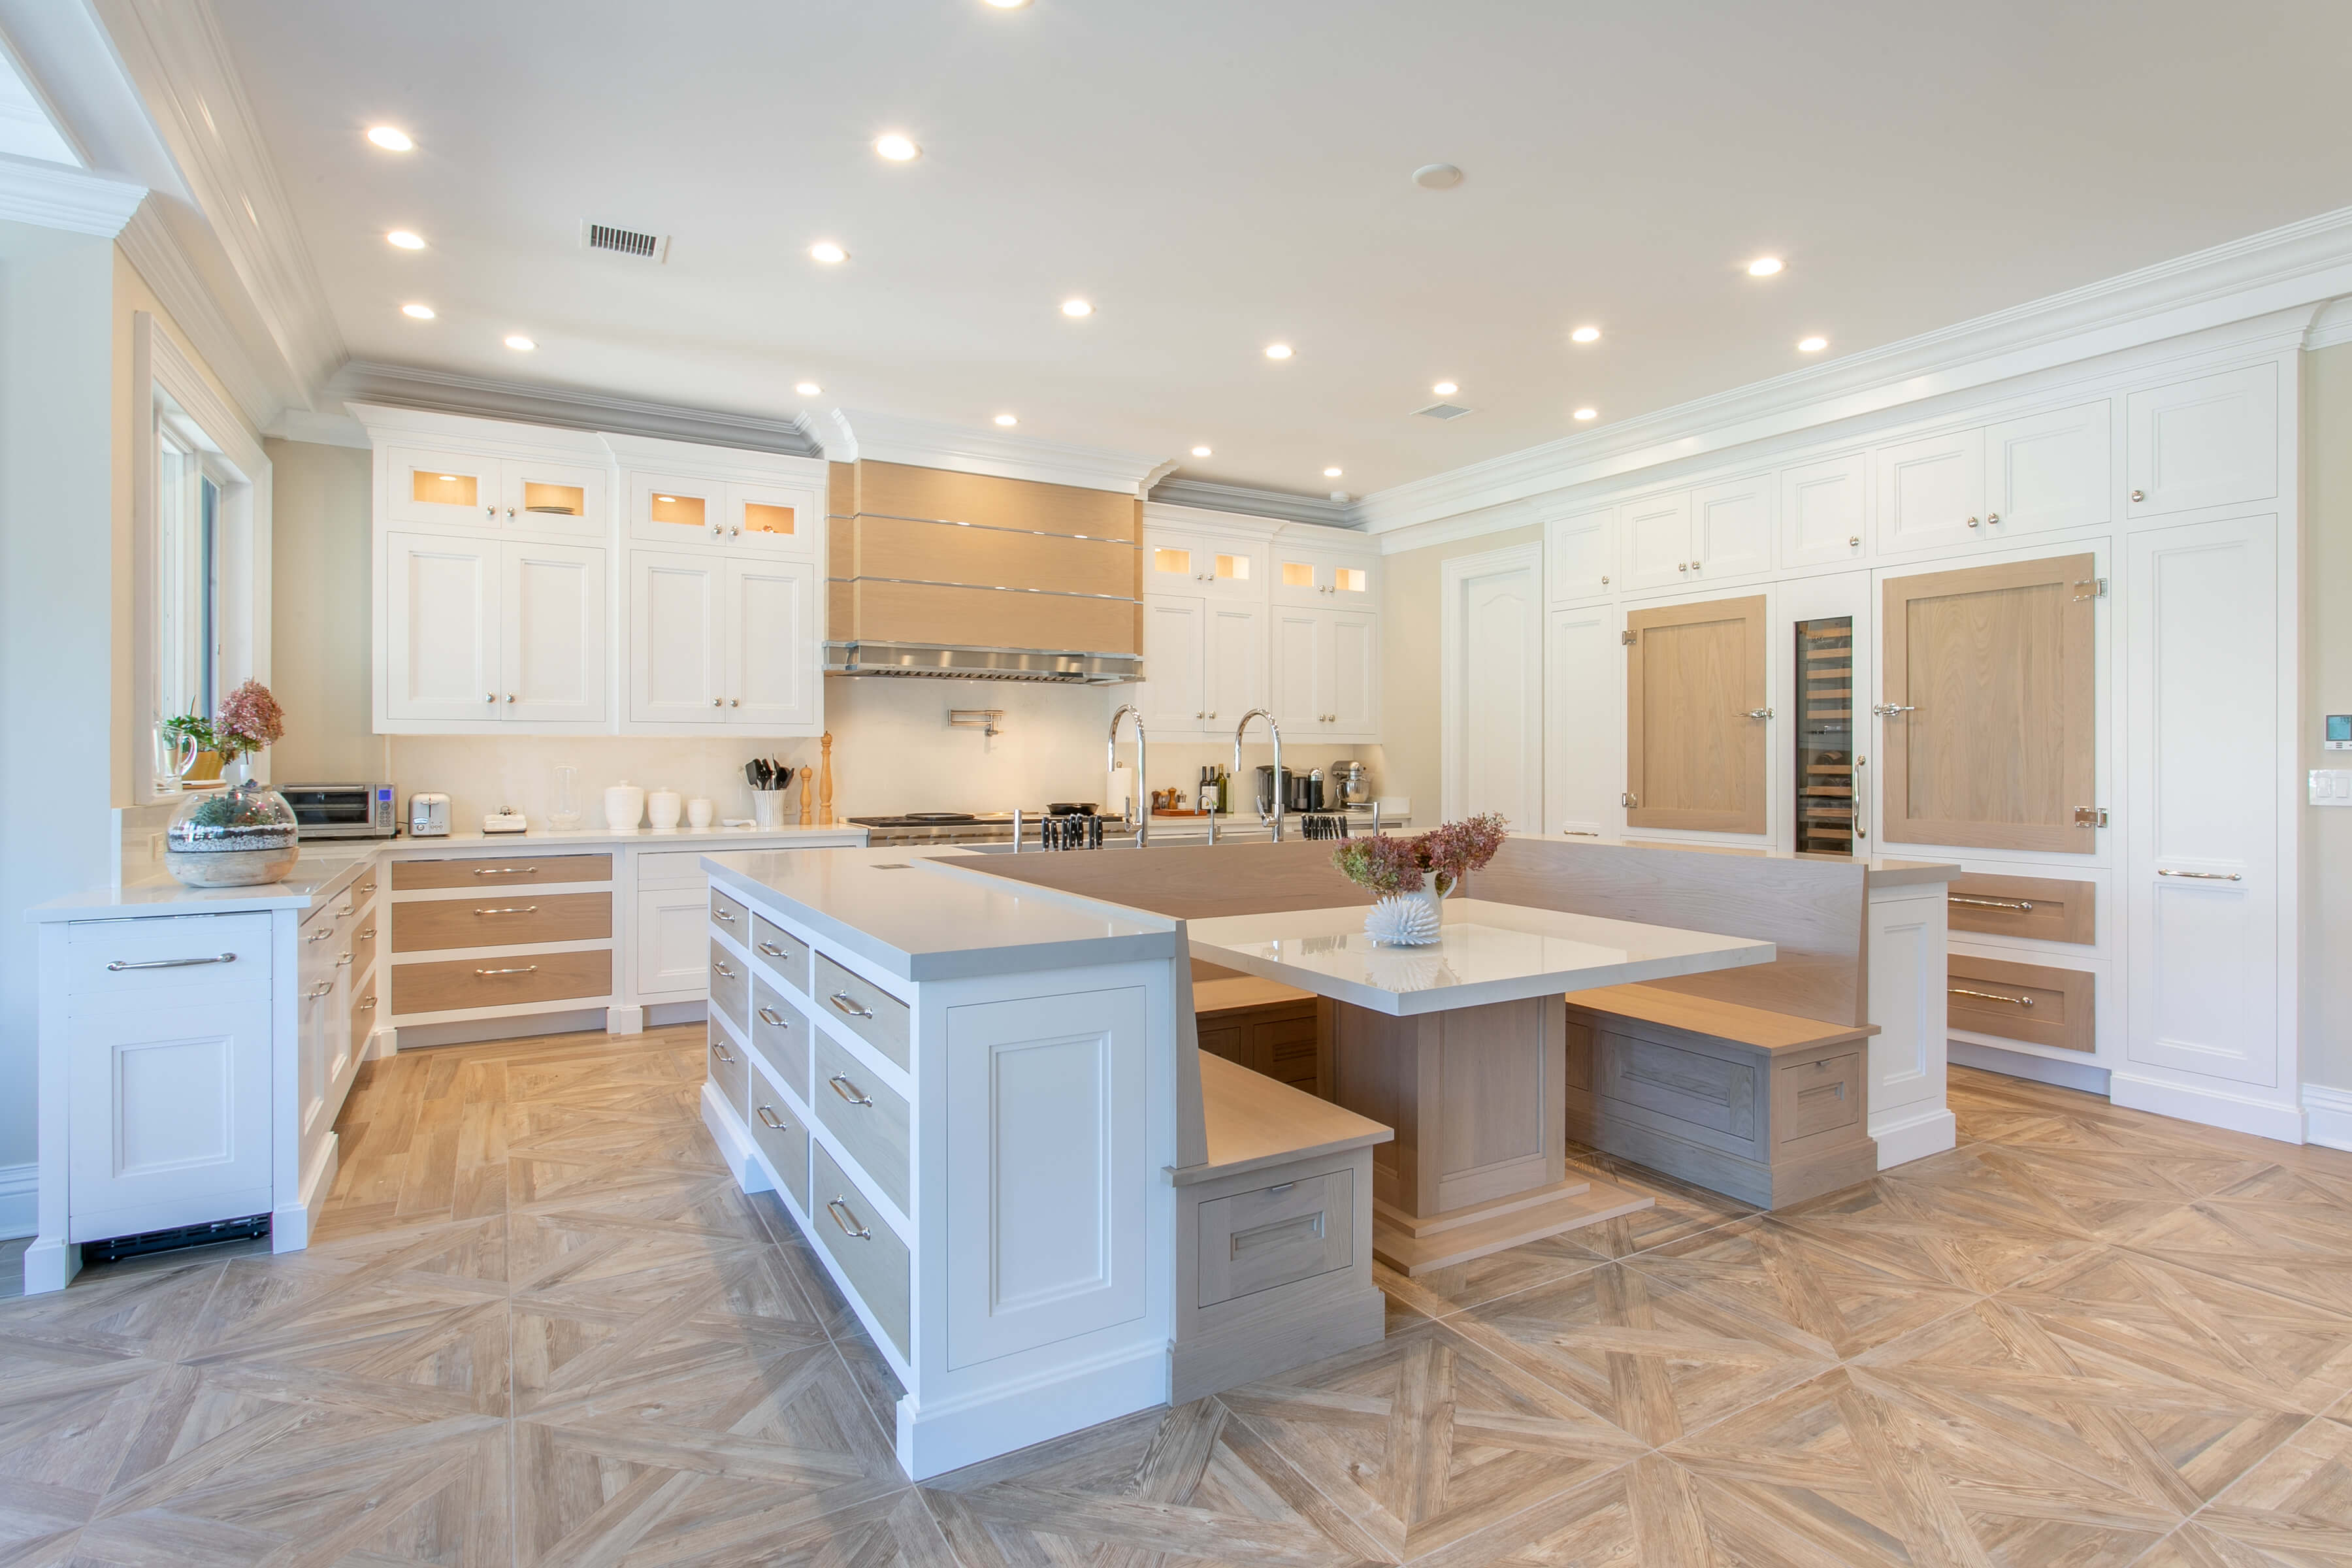 Custom kitchen booth dinning set with pearl walnut wood. Custom range hood and bk kitchen design